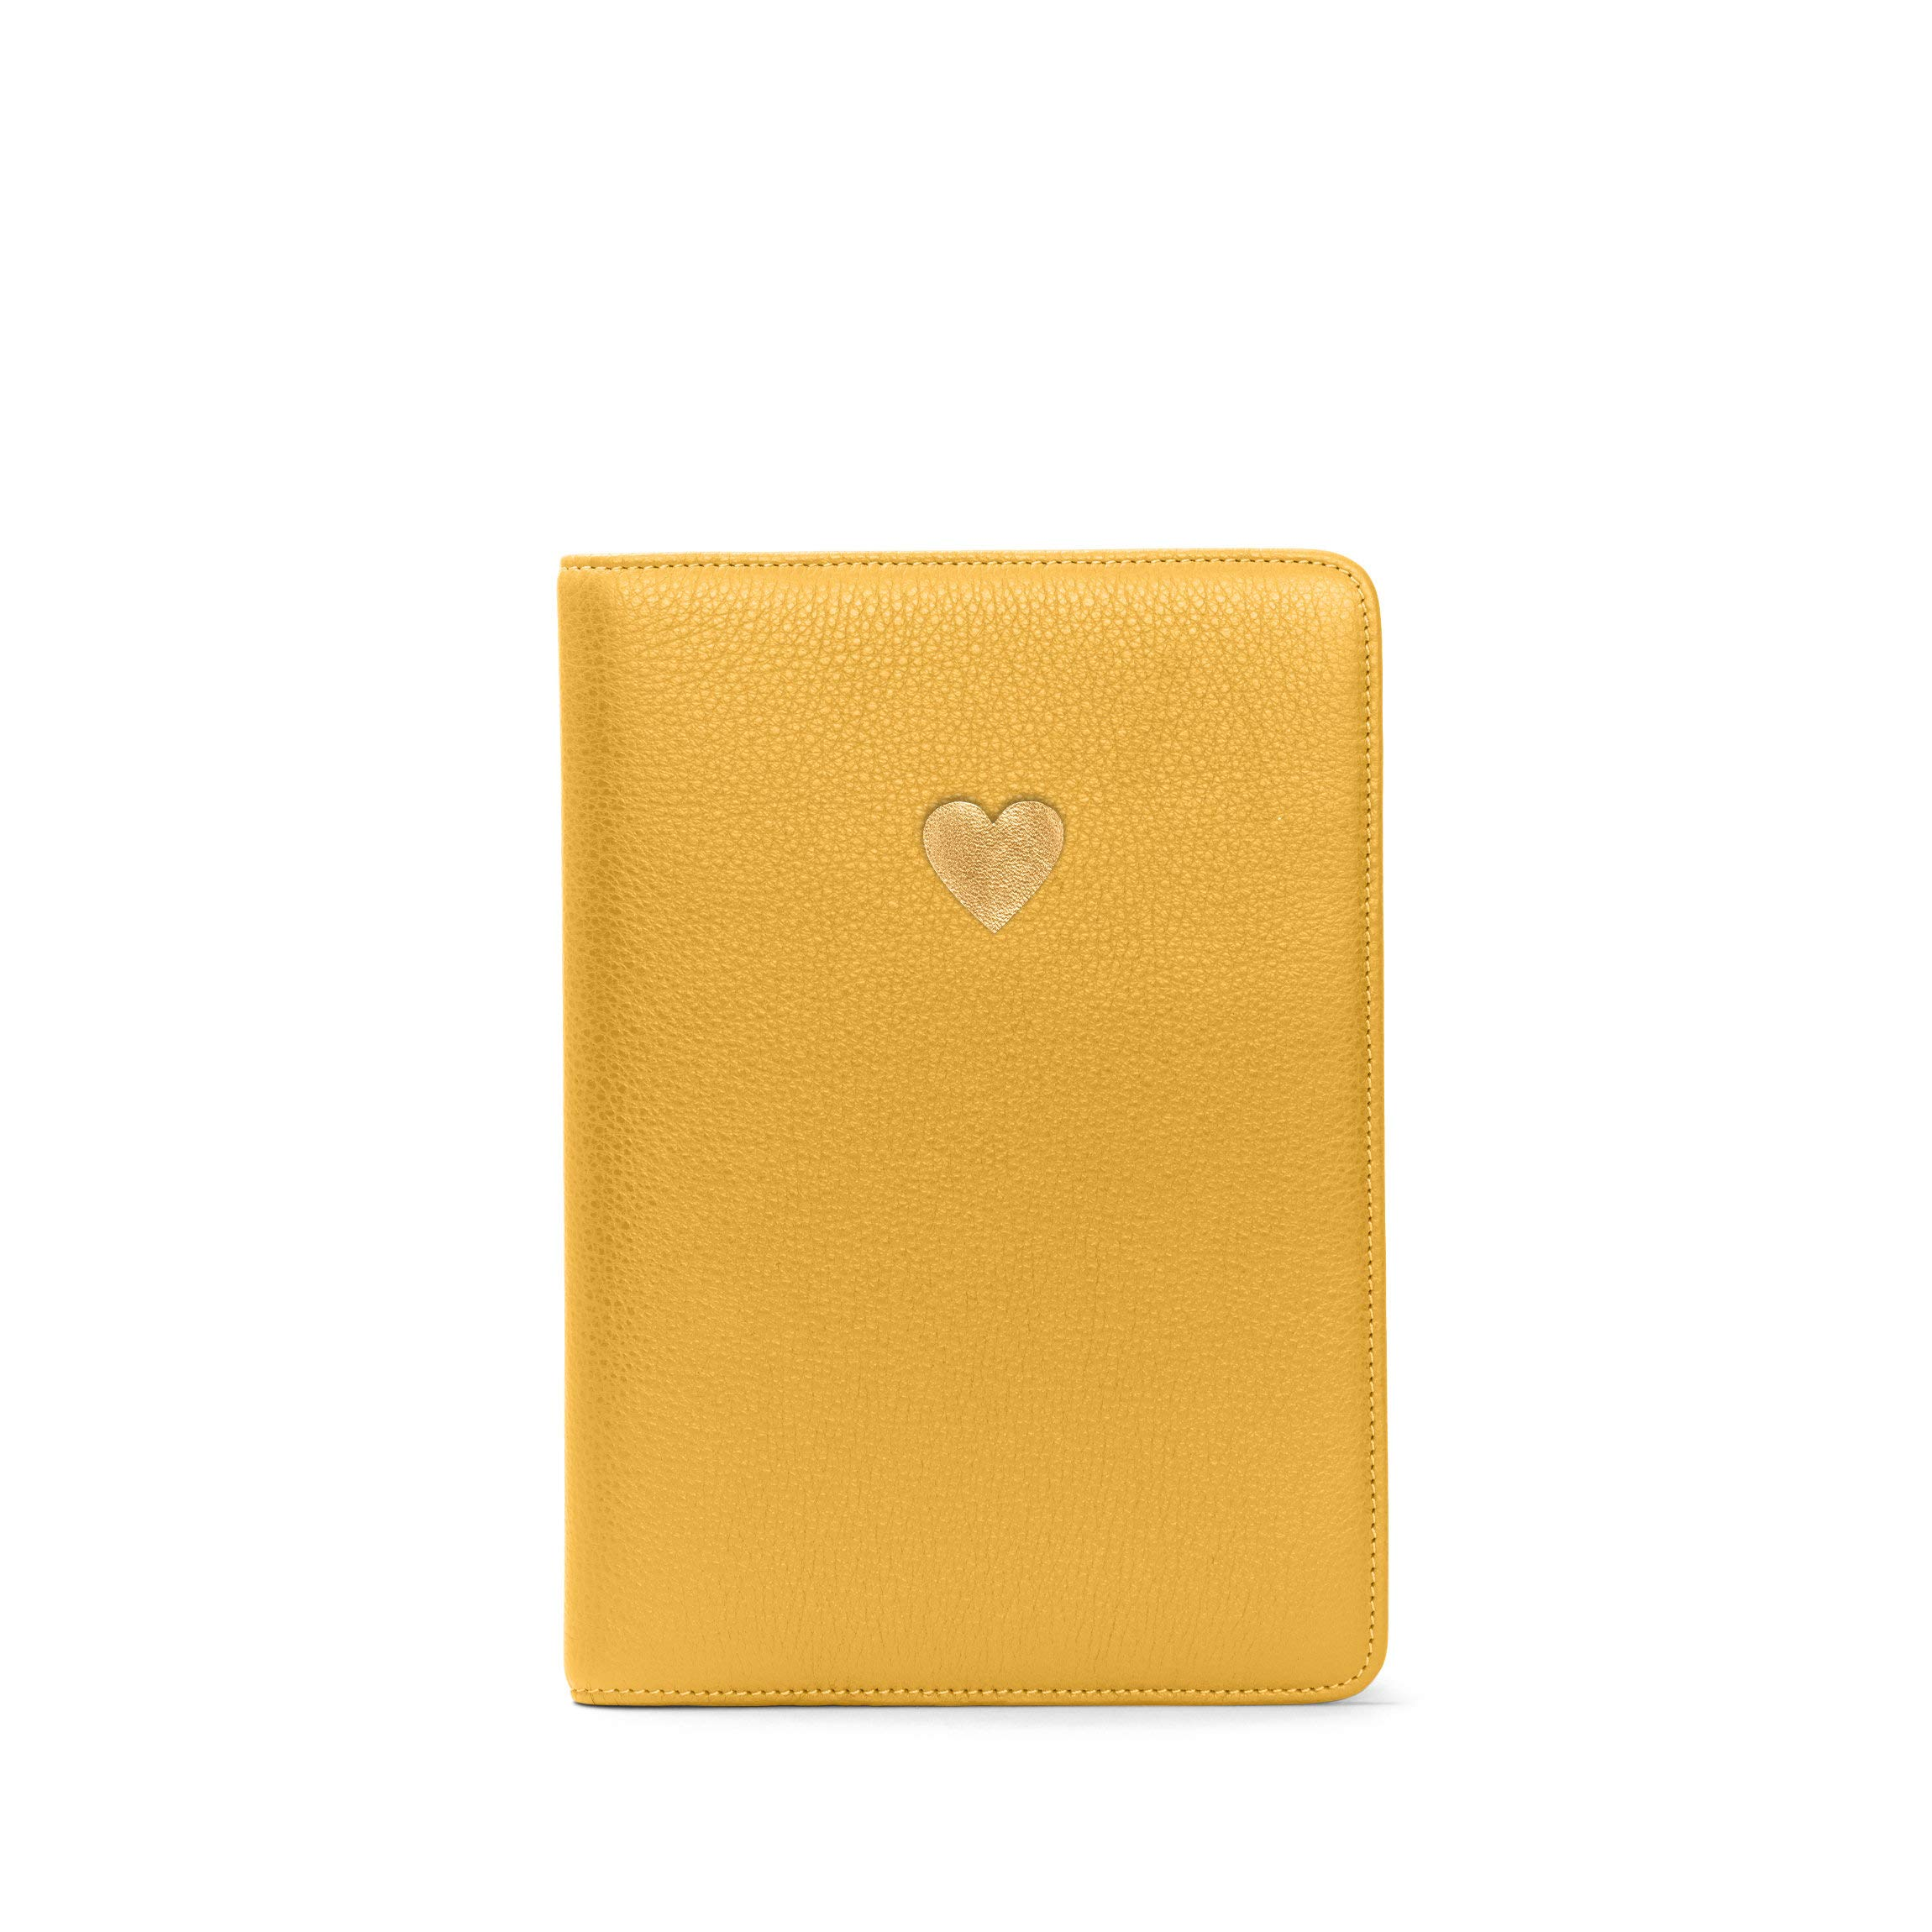 Heart Journal - Full Grain Leather Leather - Turmeric (Yellow)